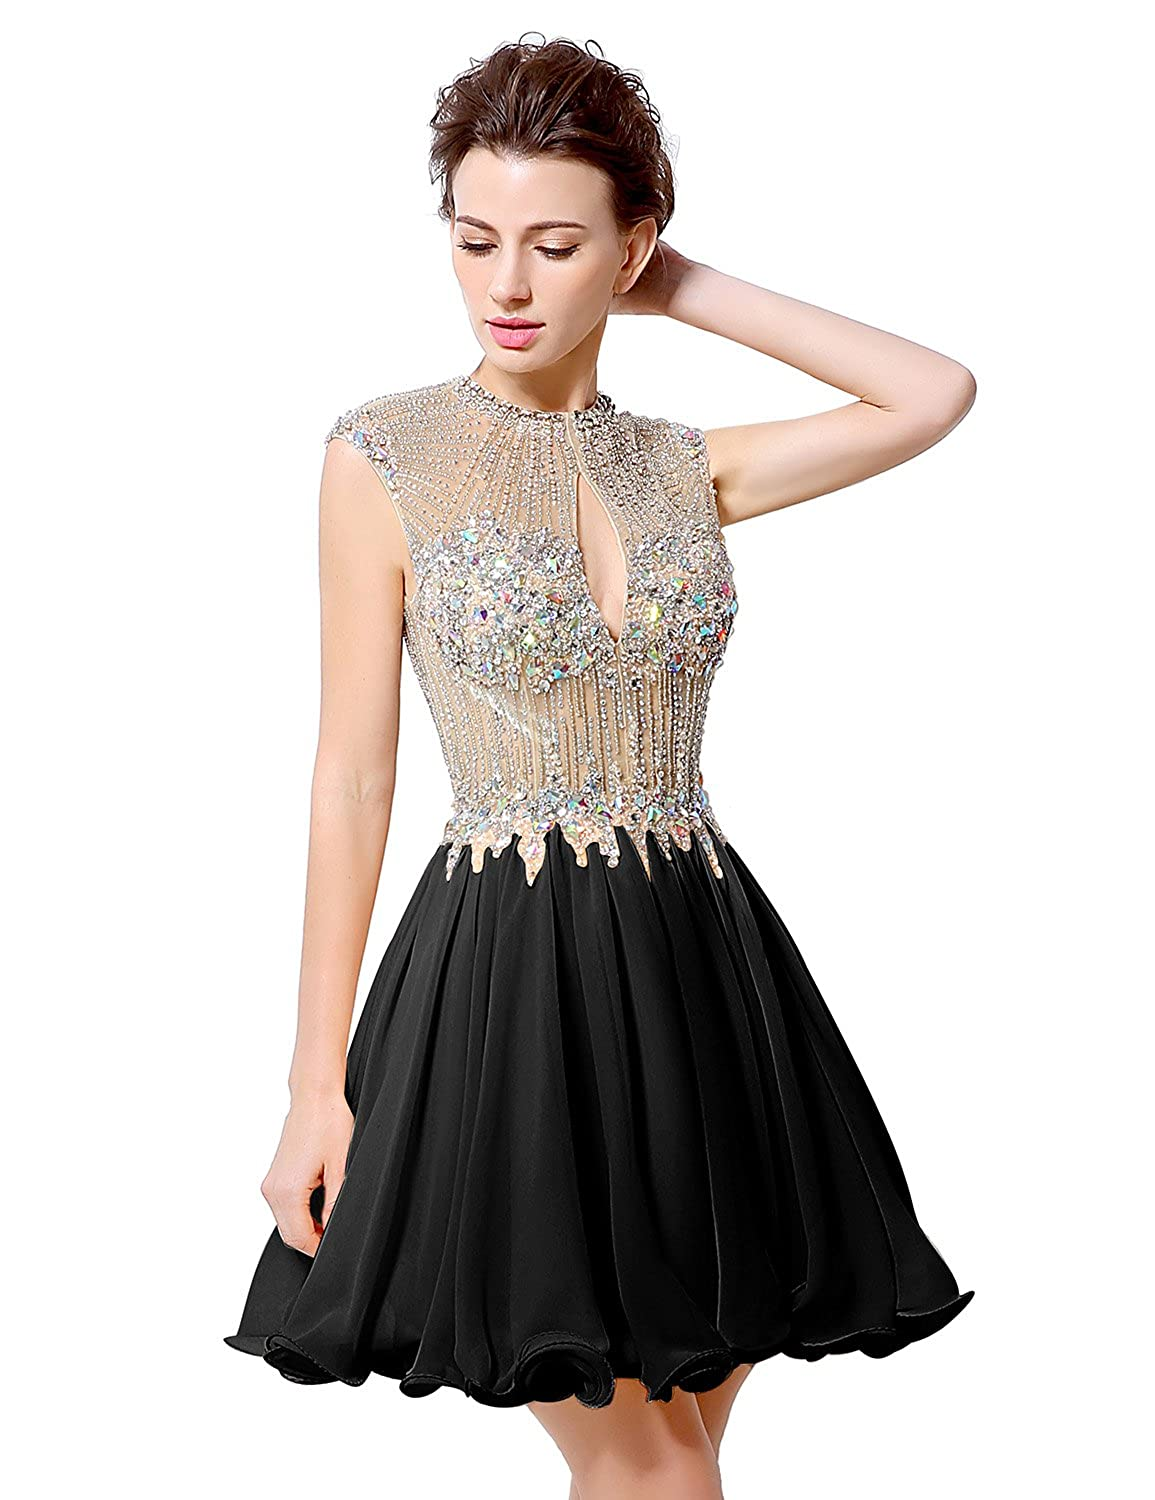 Clearbridal Women's Ladies Beading Party Prom Dress Chiffon High Neck Backless Short Homecoming Cocktail Gowns LX012